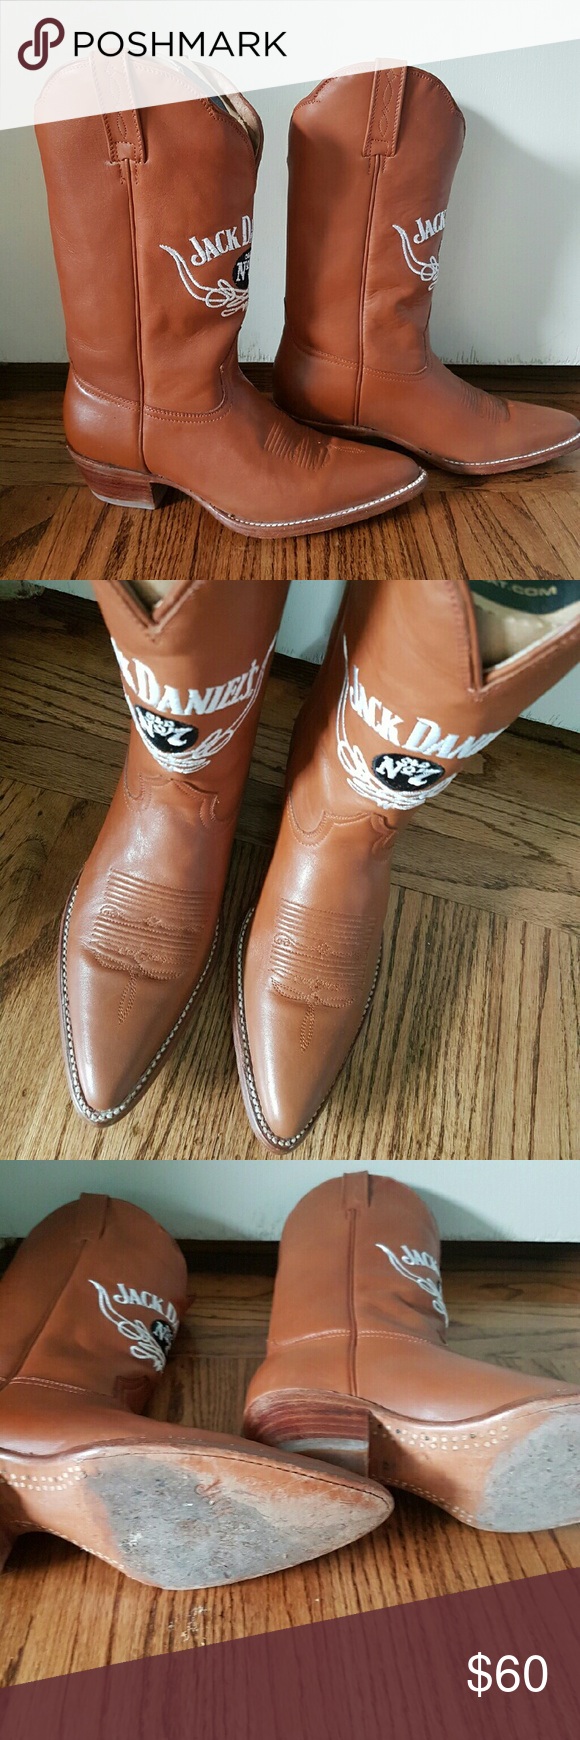 Jack Daniels Brown Cowboy Boots I wore these boots two times. I love them but they fit too tight on the top of my foot. Jack Daniels Shoes Heeled Boots